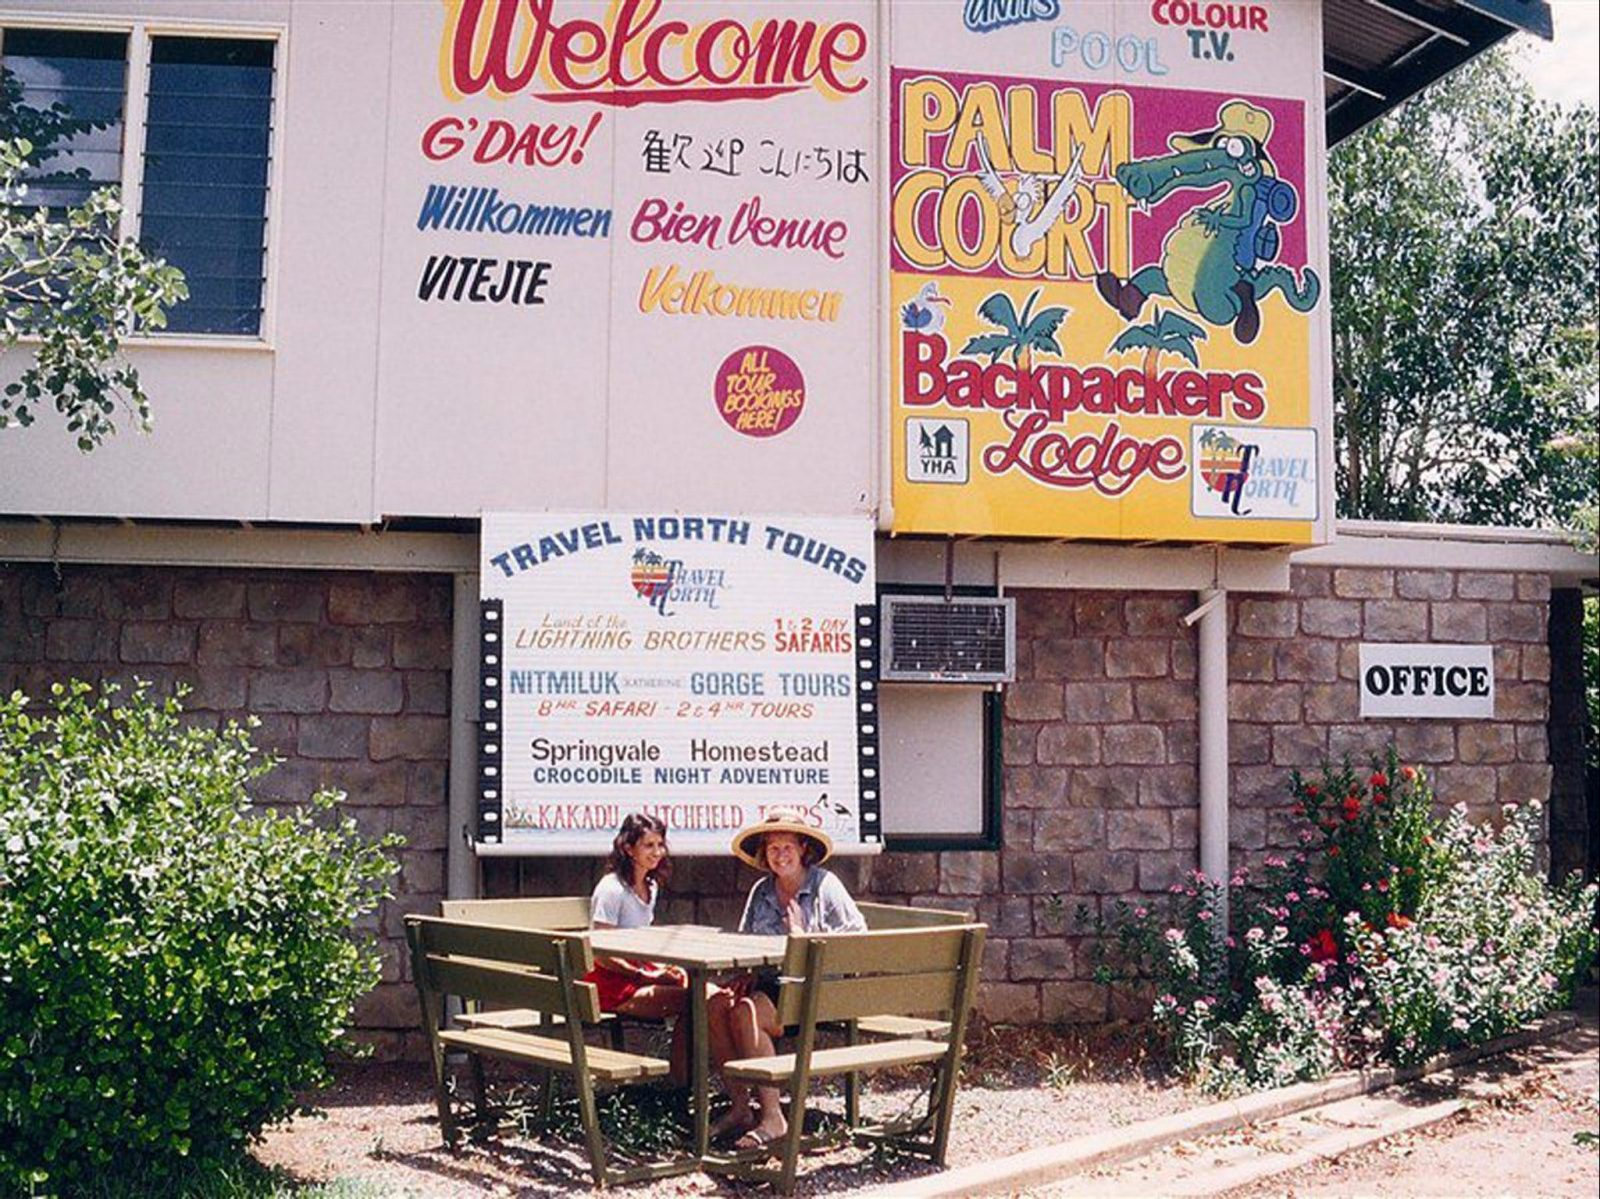 Palm Court Budget Motel and Backpackers